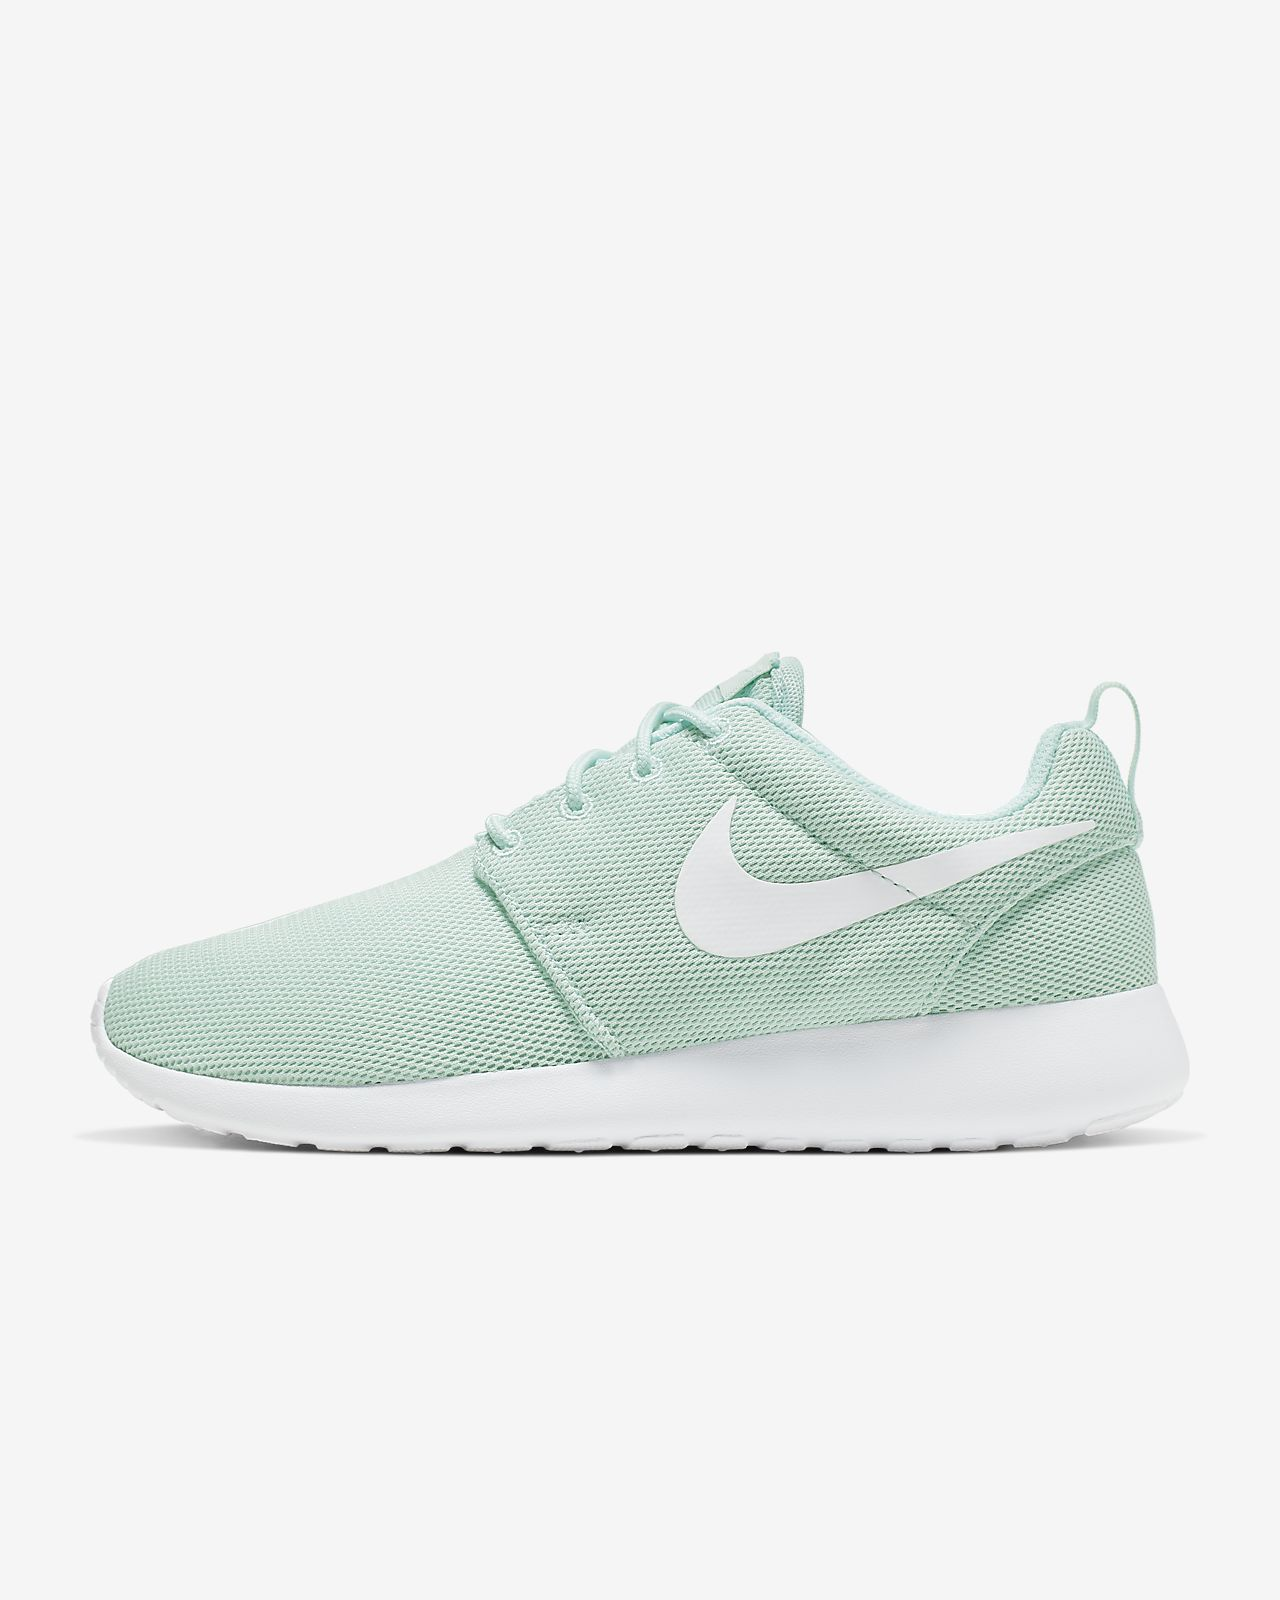 premium selection df371 9dced ... Nike Roshe One Women s Shoe